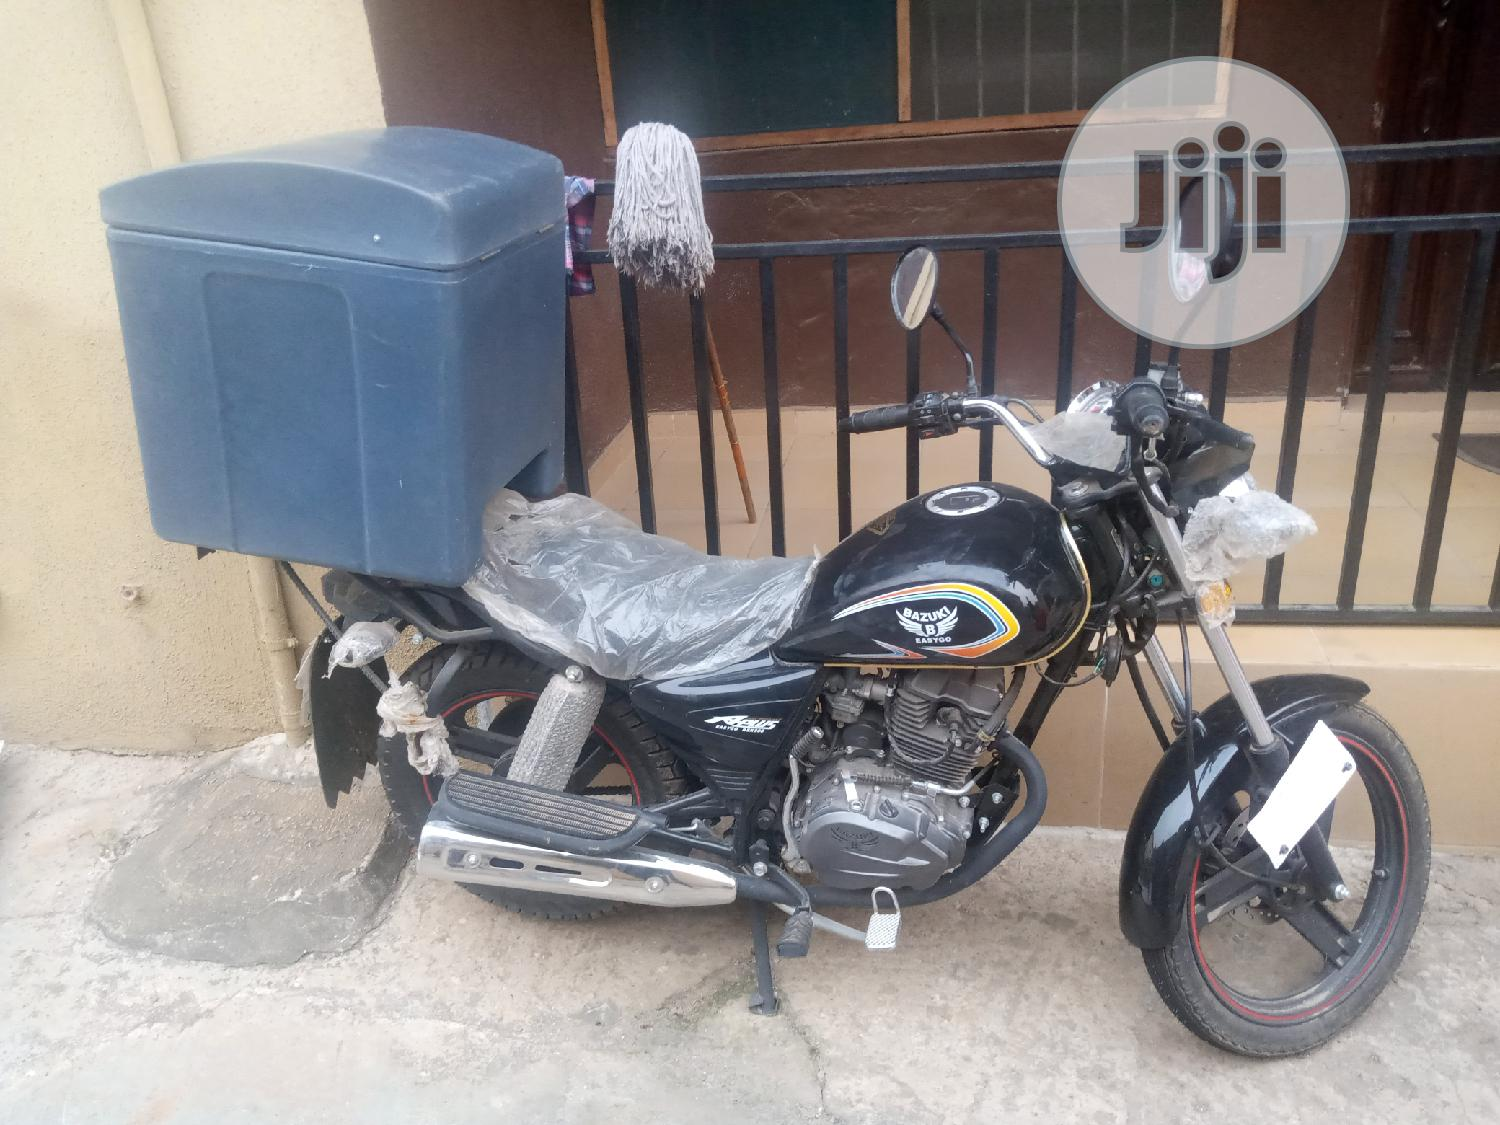 New Motorcycle 2020 Black | Motorcycles & Scooters for sale in Alimosho, Lagos State, Nigeria